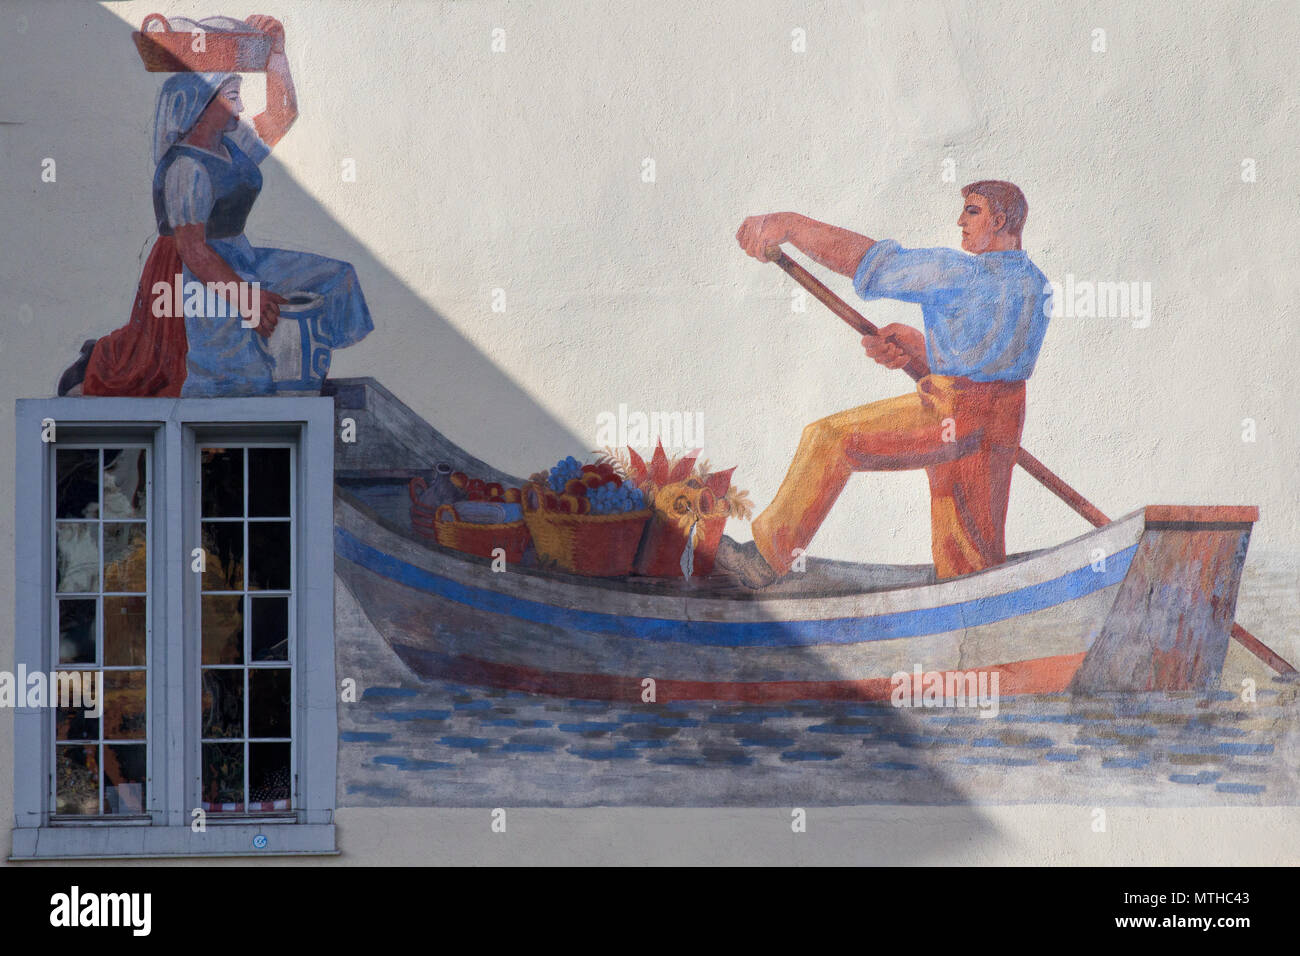 Inhabitant of Zurich way of life in the old times (fresco on a house along the river Limmet) - Stock Image